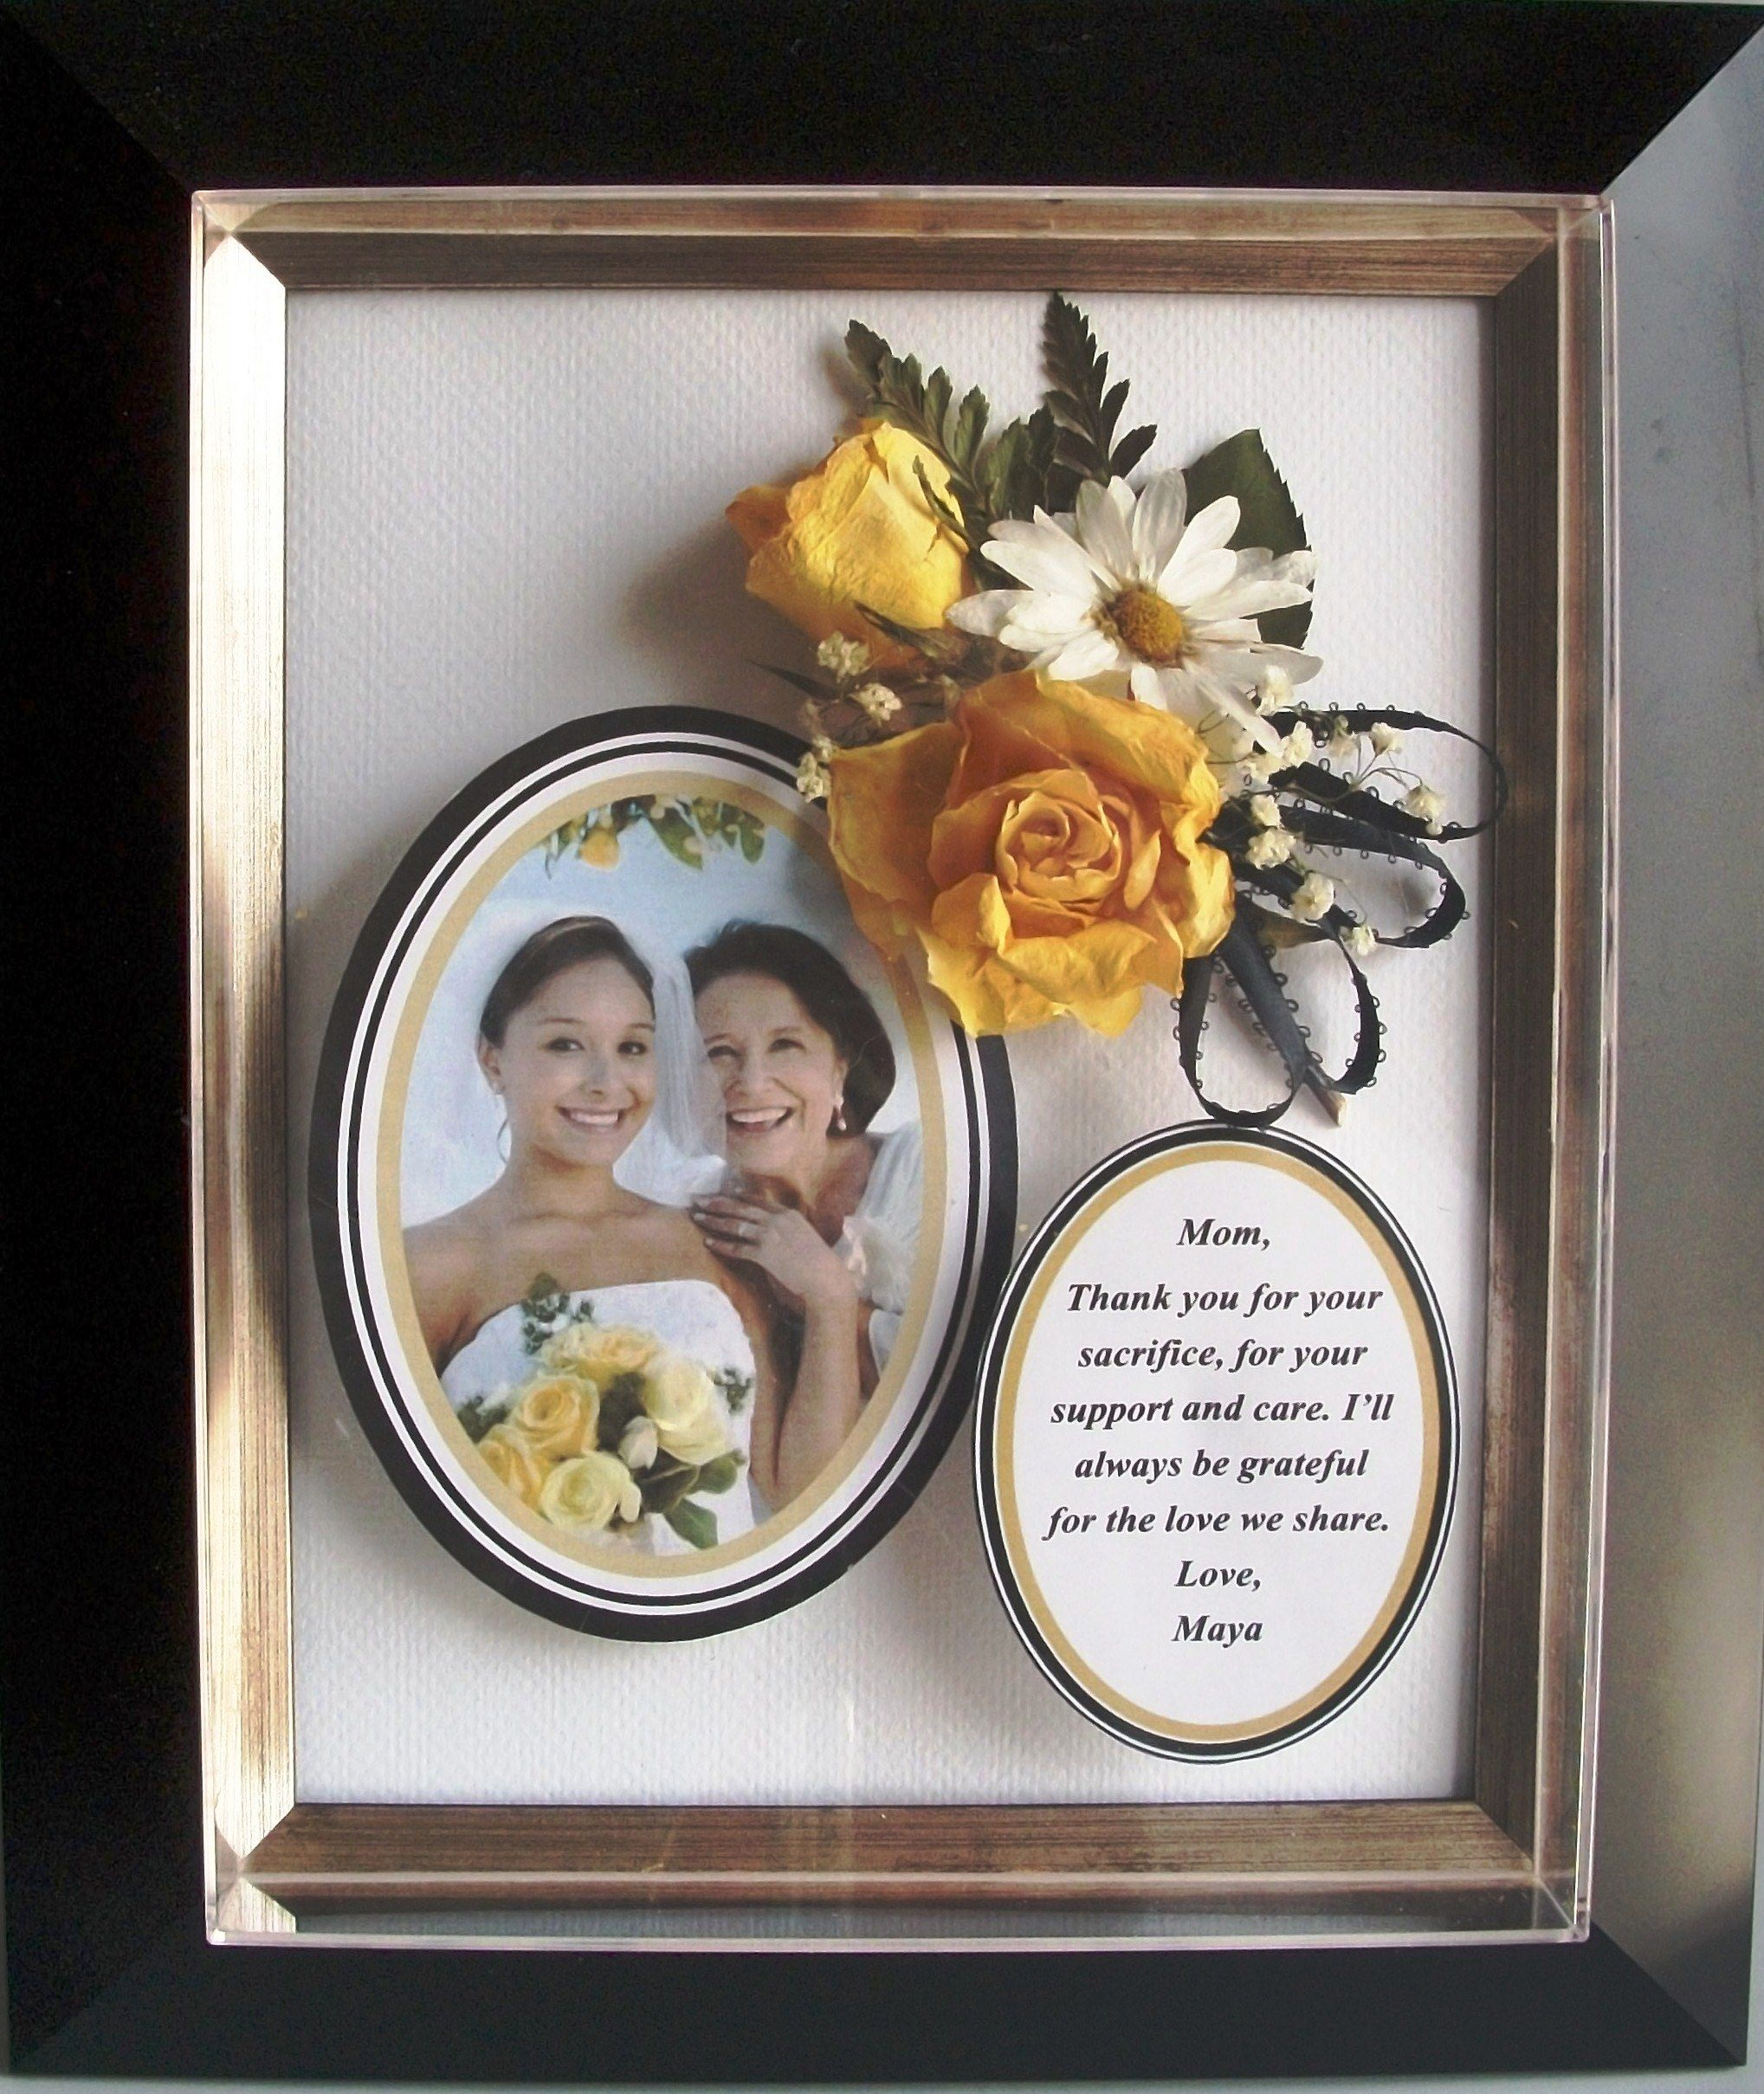 Post Wedding Gifts: Clever And Pretty! Mother Of The Bride Keepsake